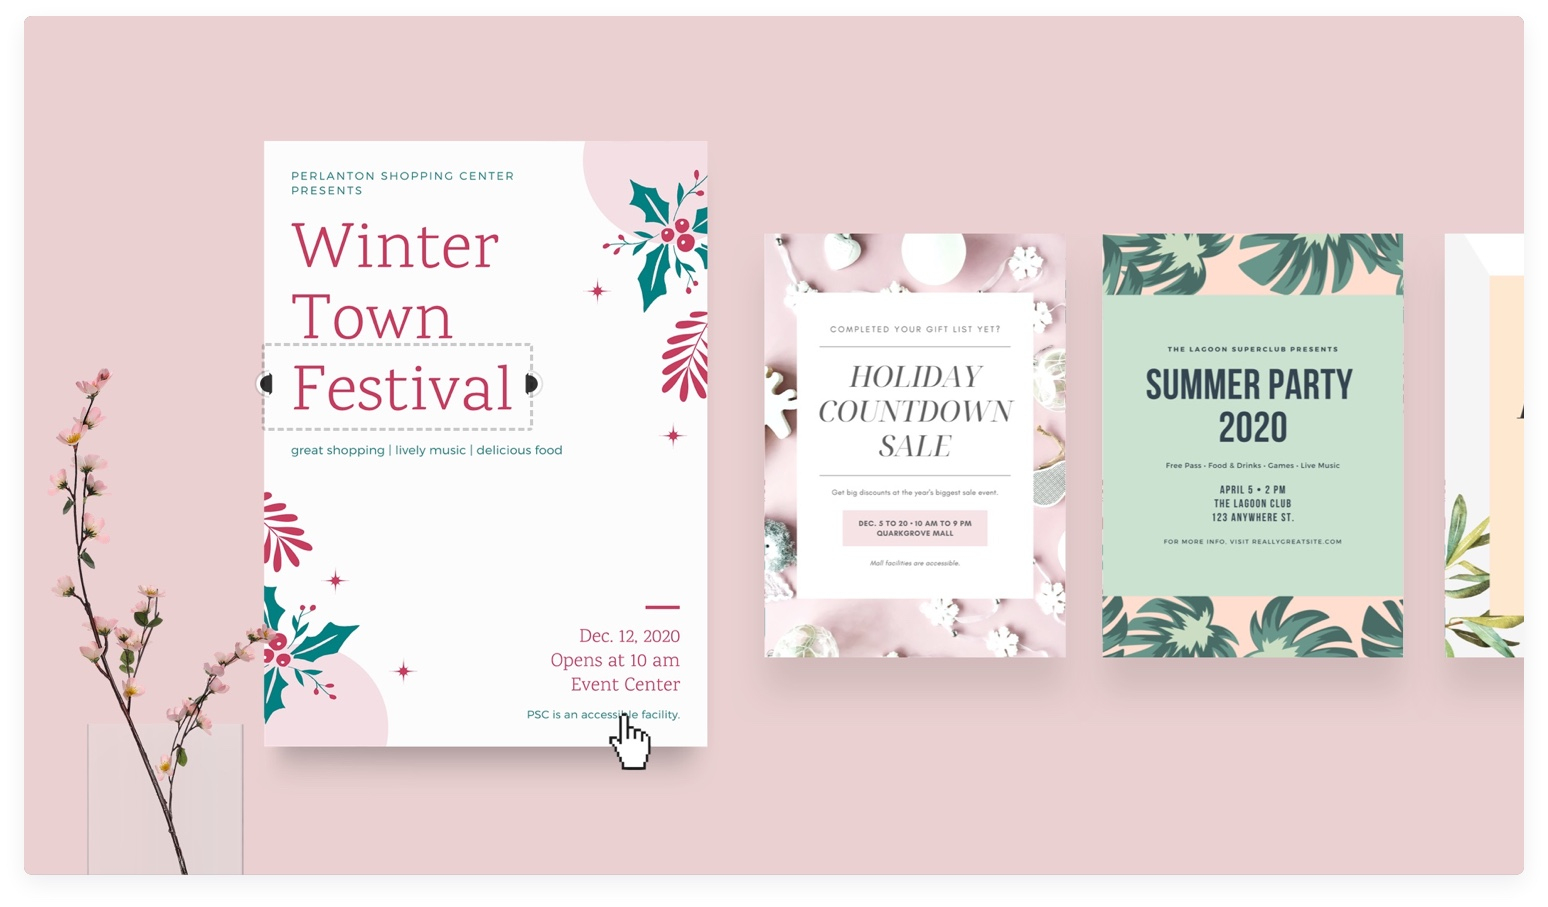 Free Online Flyer Maker: Design Custom Flyers With Canva - About Canva - Free Printable Flyers For Parties